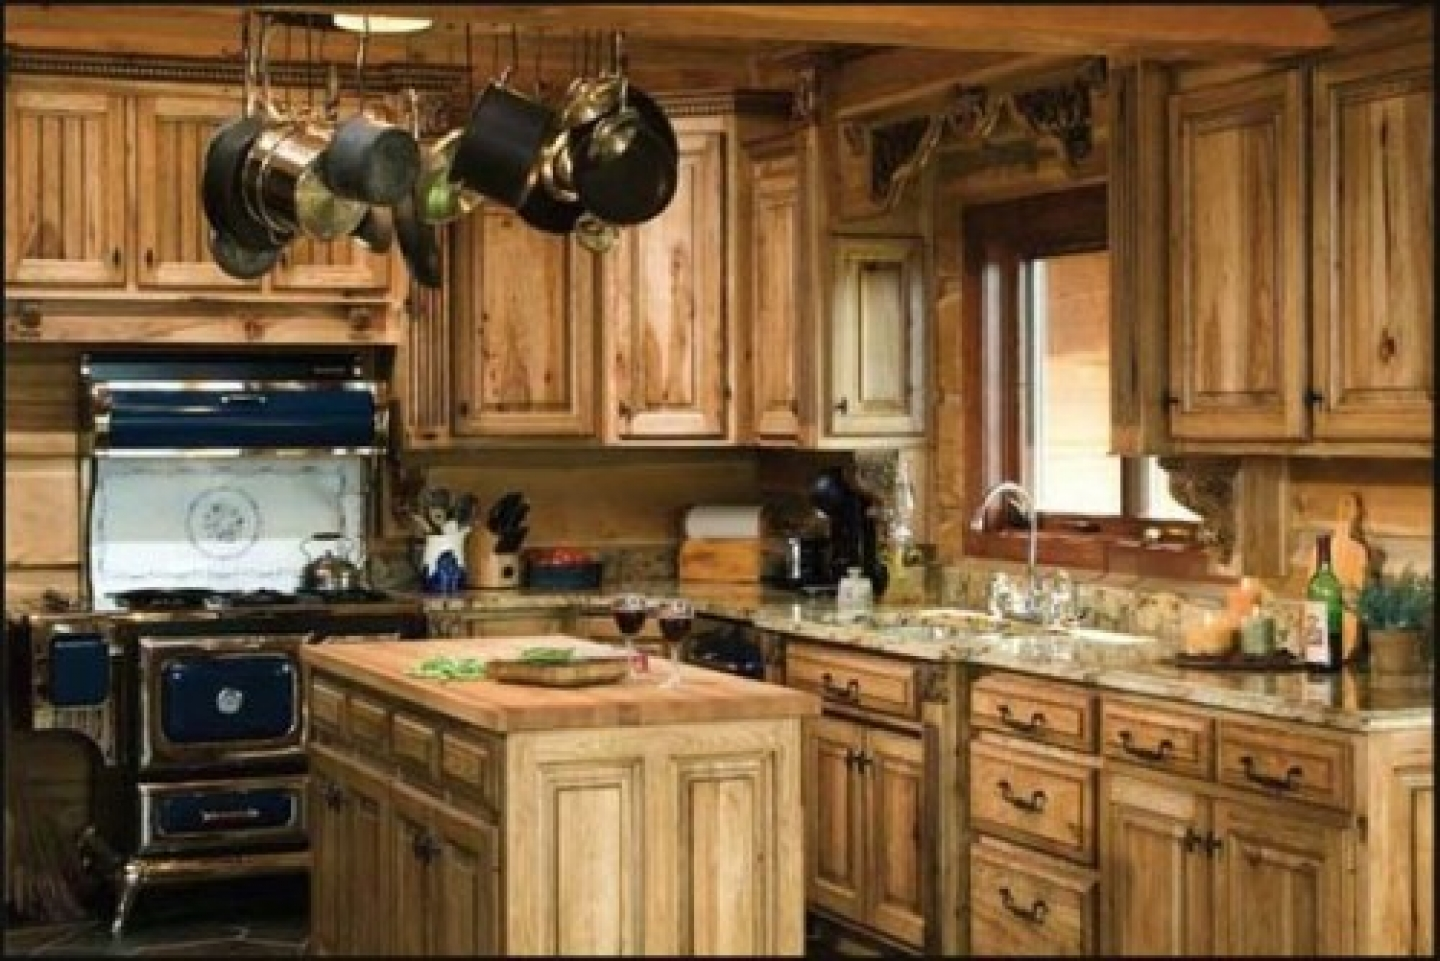 kitchen cabinets layout ideas country kitchen cabinet design ideas interior exterior - Cabinet Design Ideas